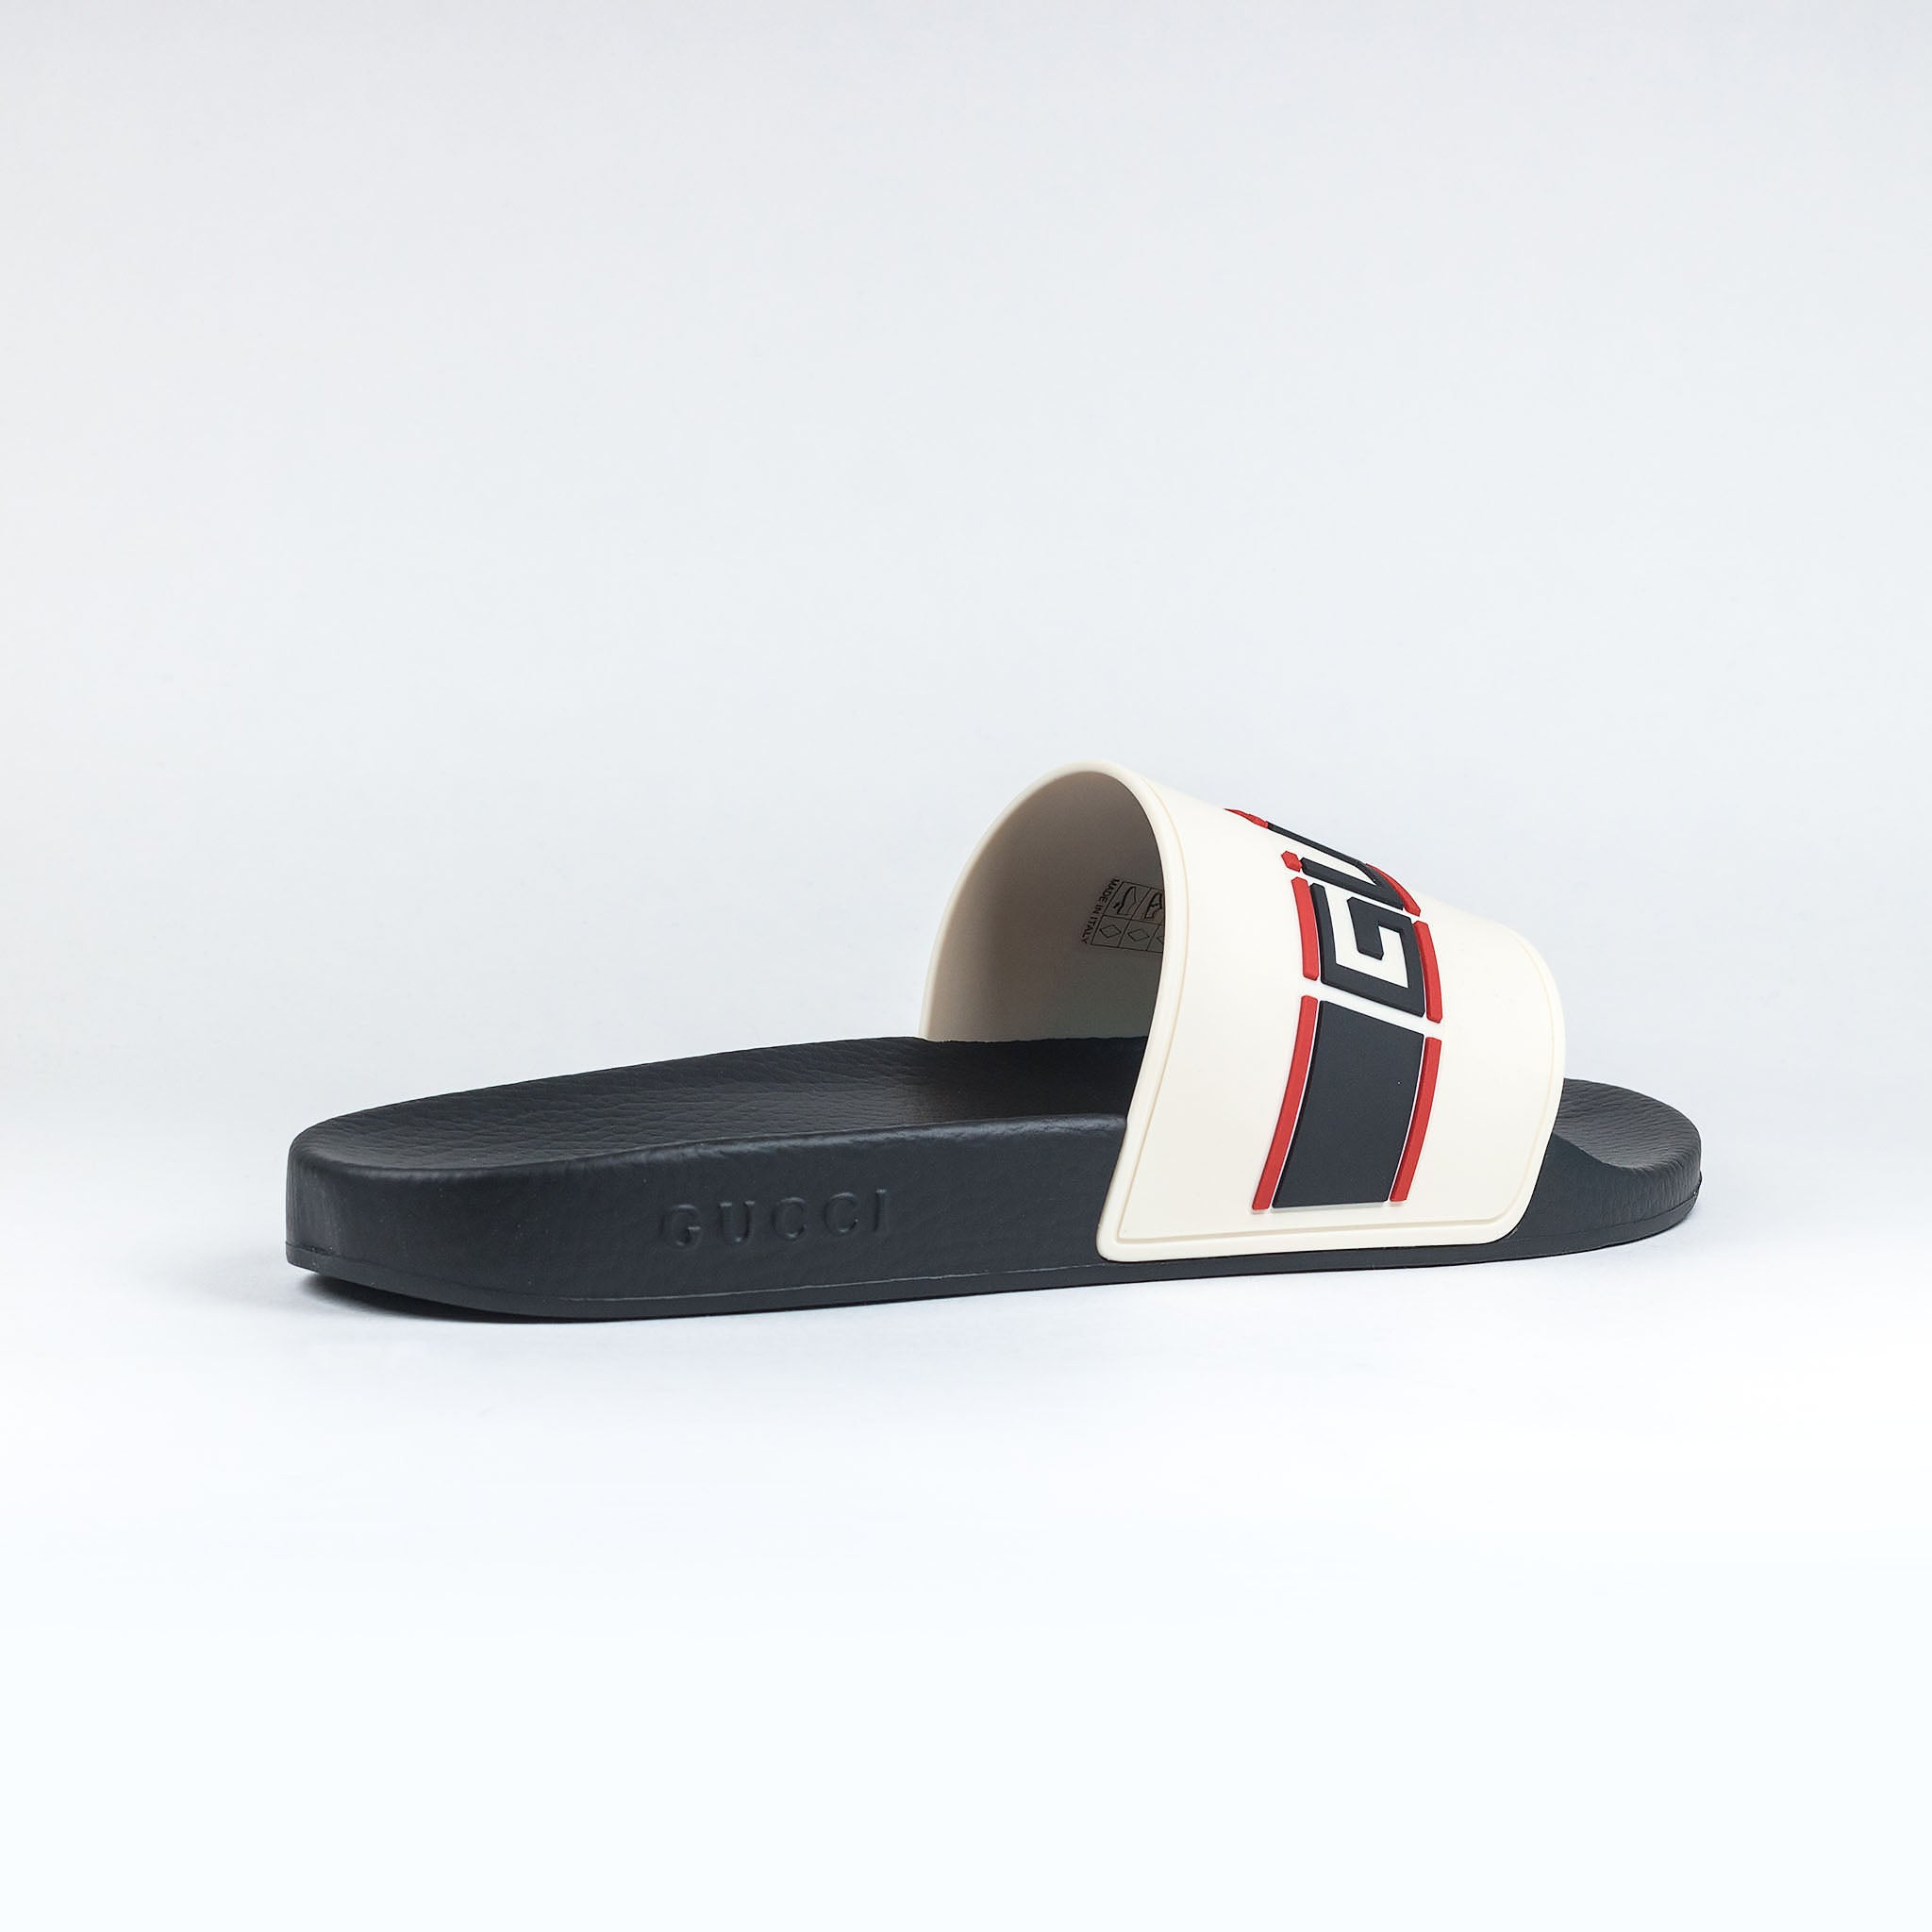 Gucci Band Logo Pool Slides Cream Black Red – Crepslocker 705074bd47e8